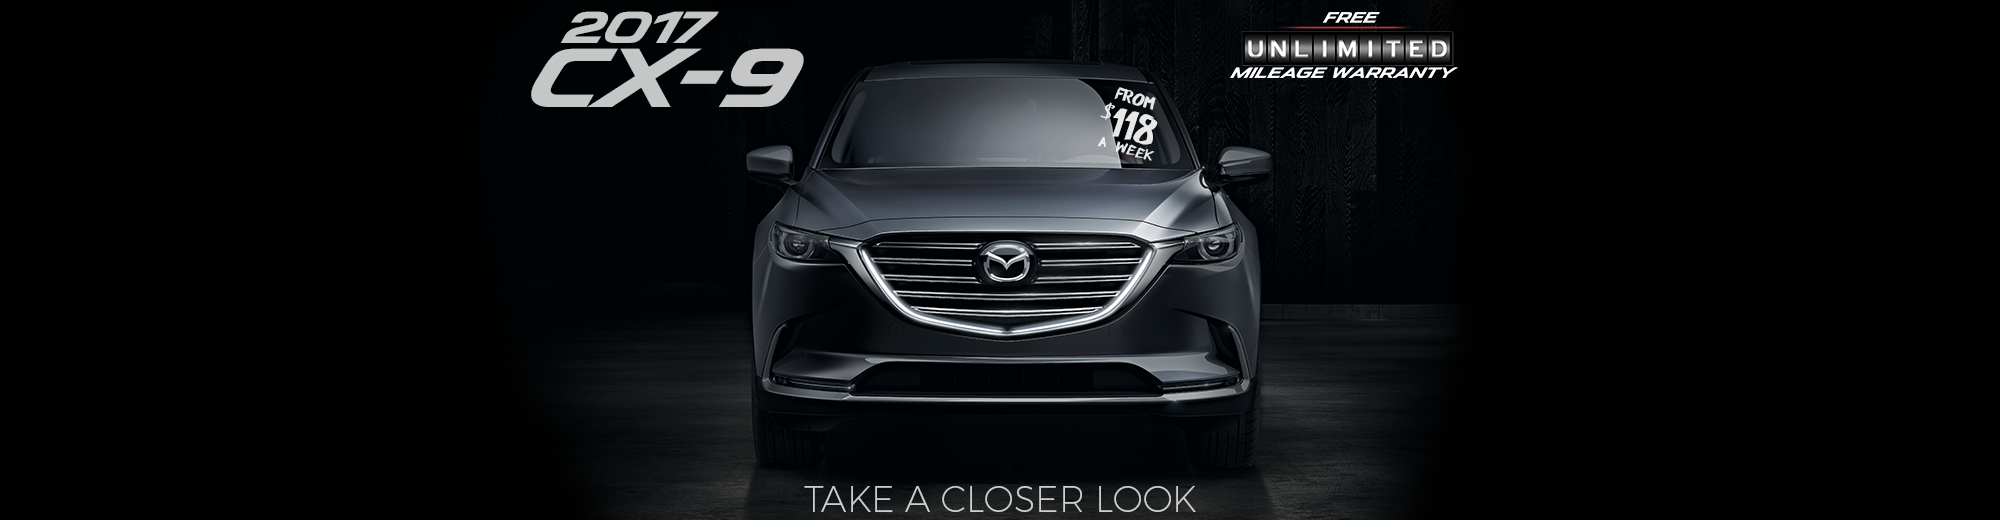 The New 2017 CX-9 is Now Available at Kramer Mazda!